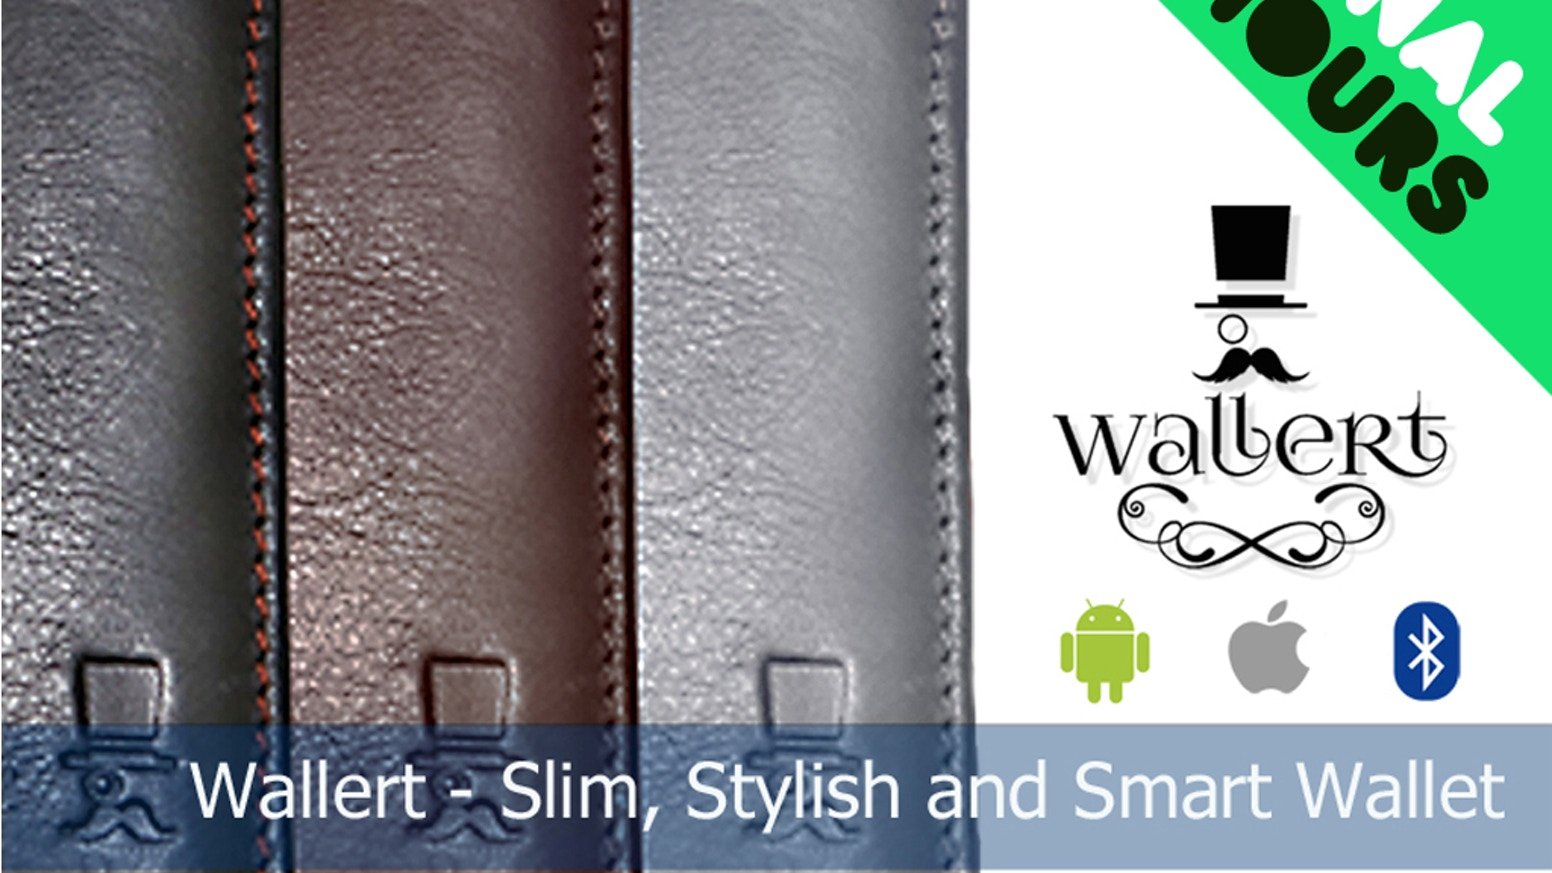 Wallert: slim your wallet and keep it Smart - with built-in bluetooth locator, latest slim design and RFID blocking technology